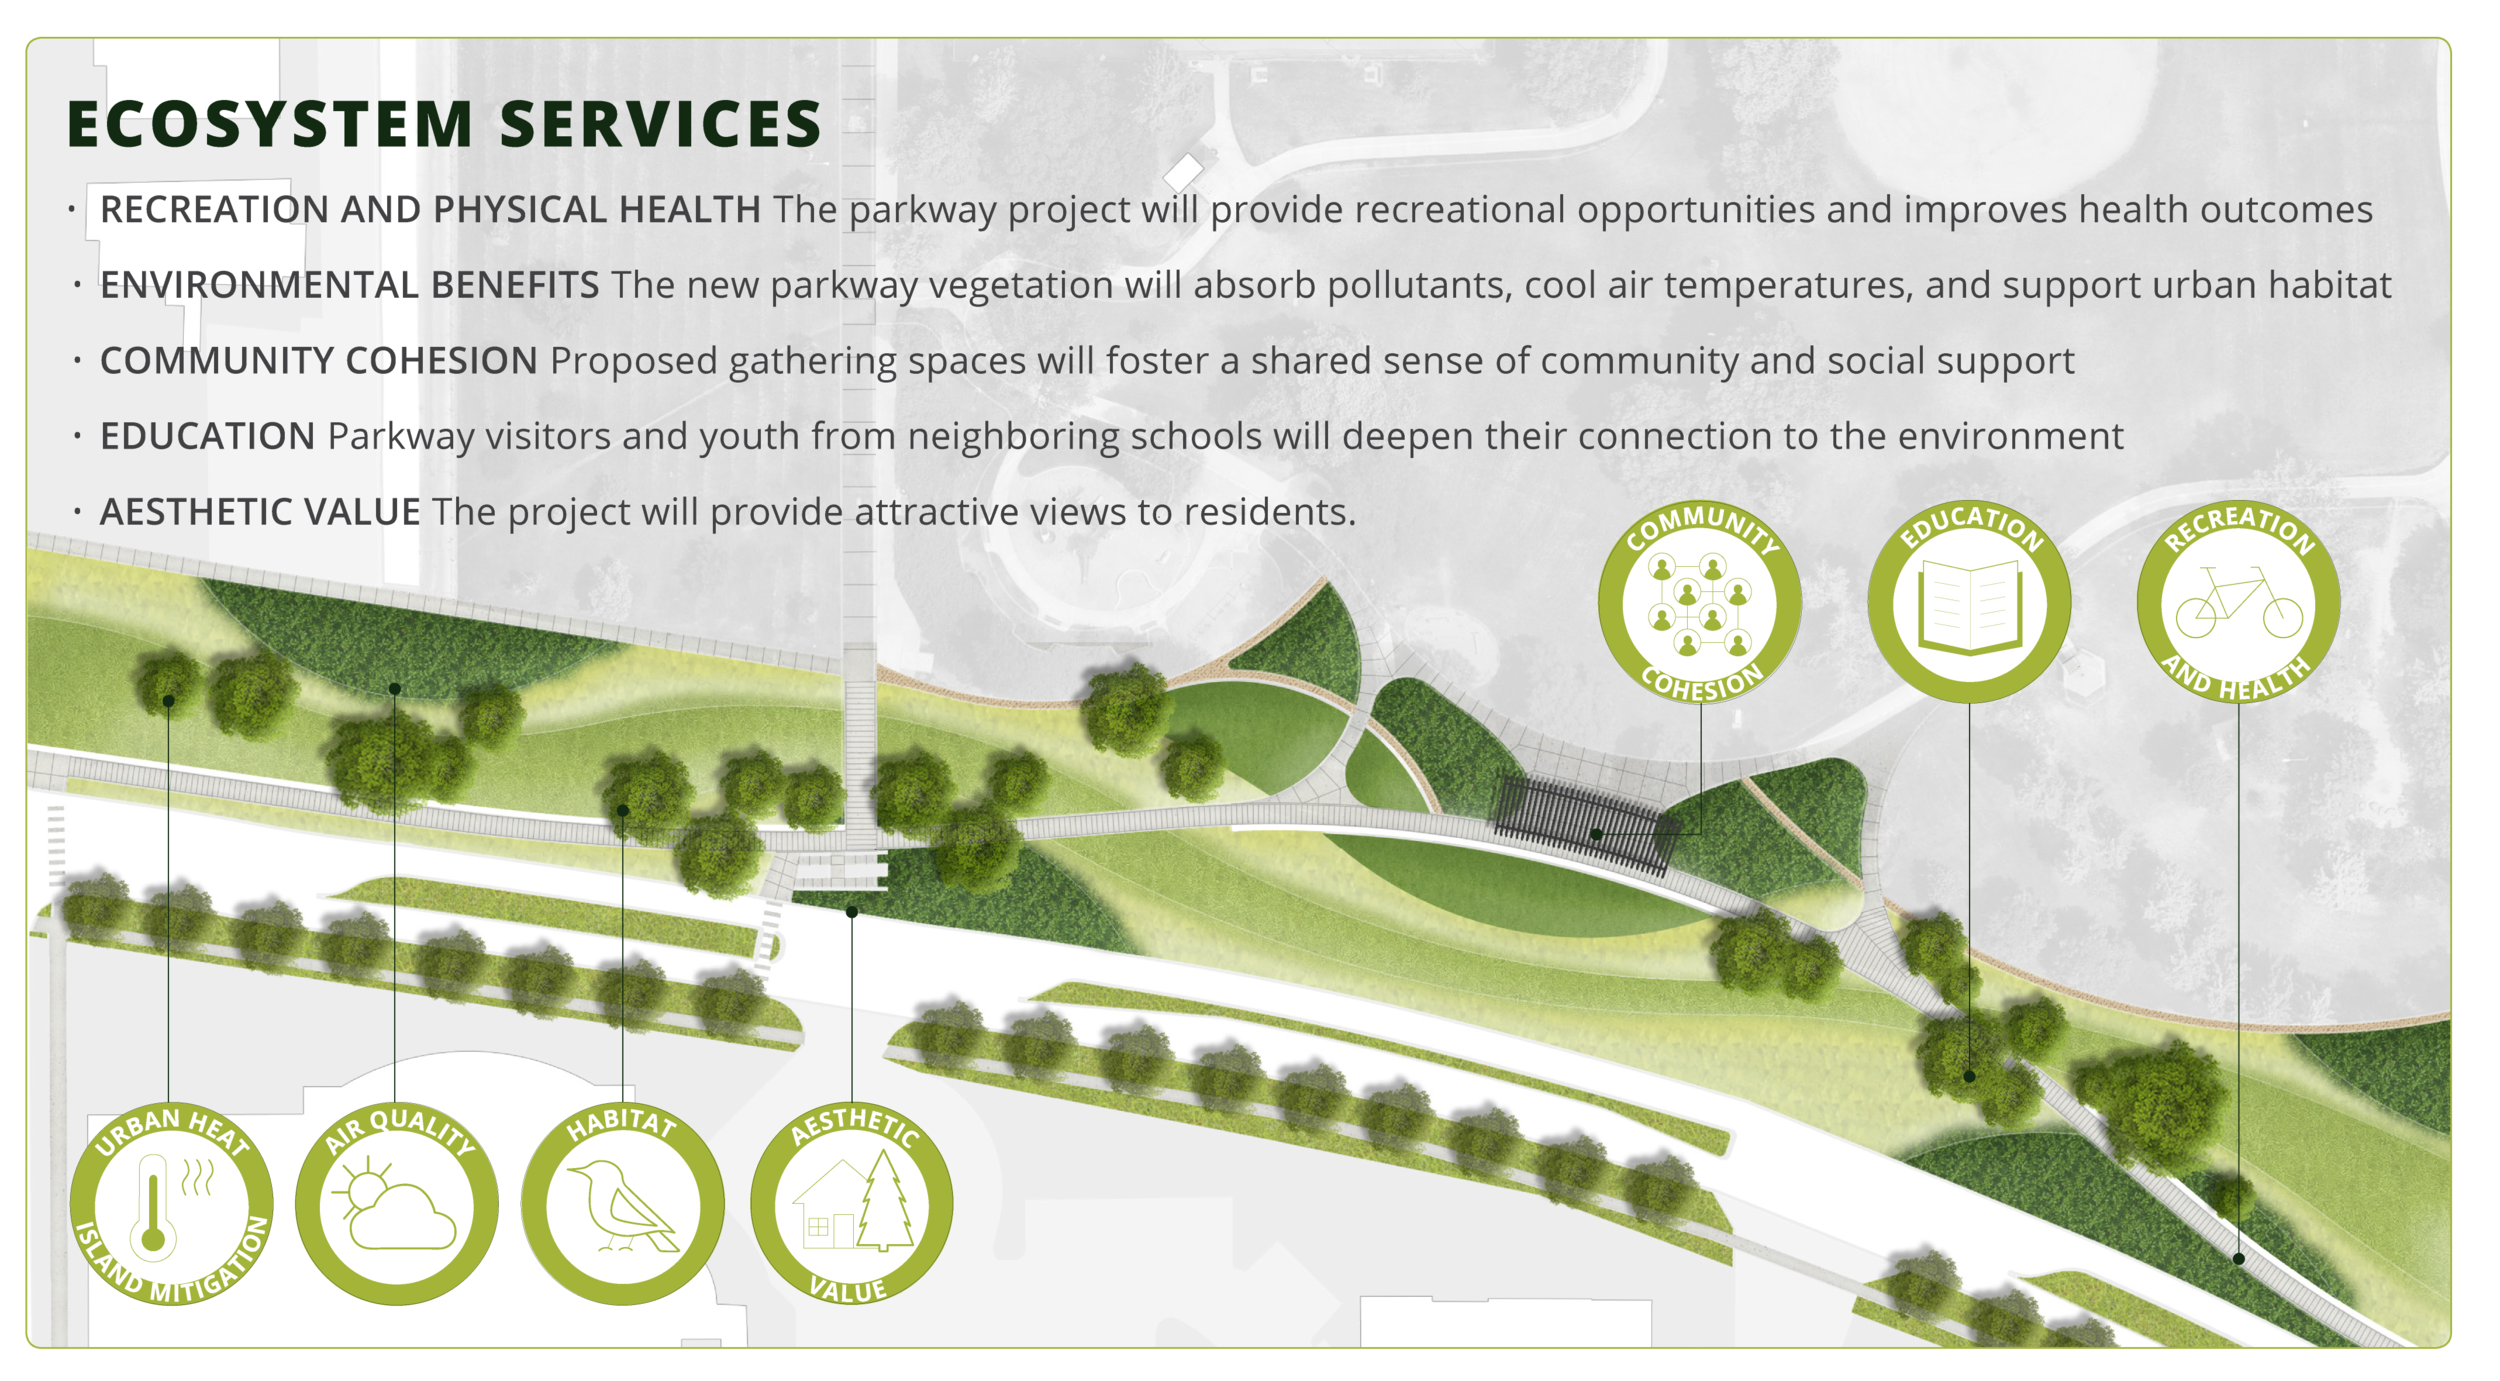 Ecosystem Services | Hale Parkway Improvements  Click to Enlarge